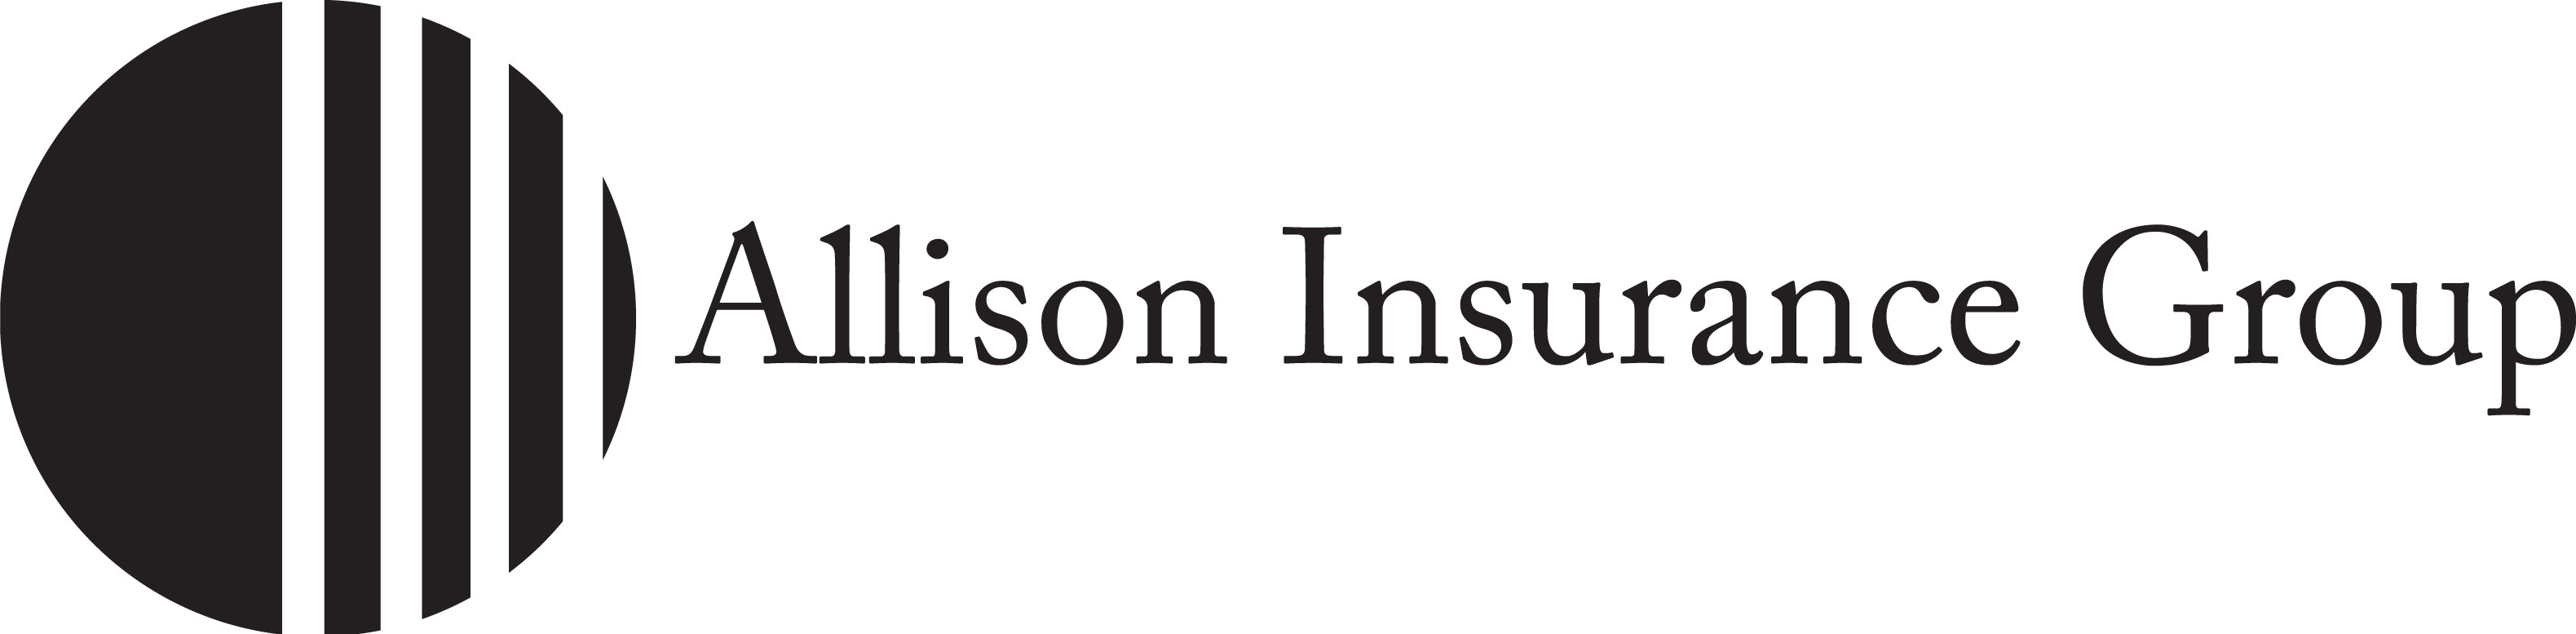 Allison Insurance Group